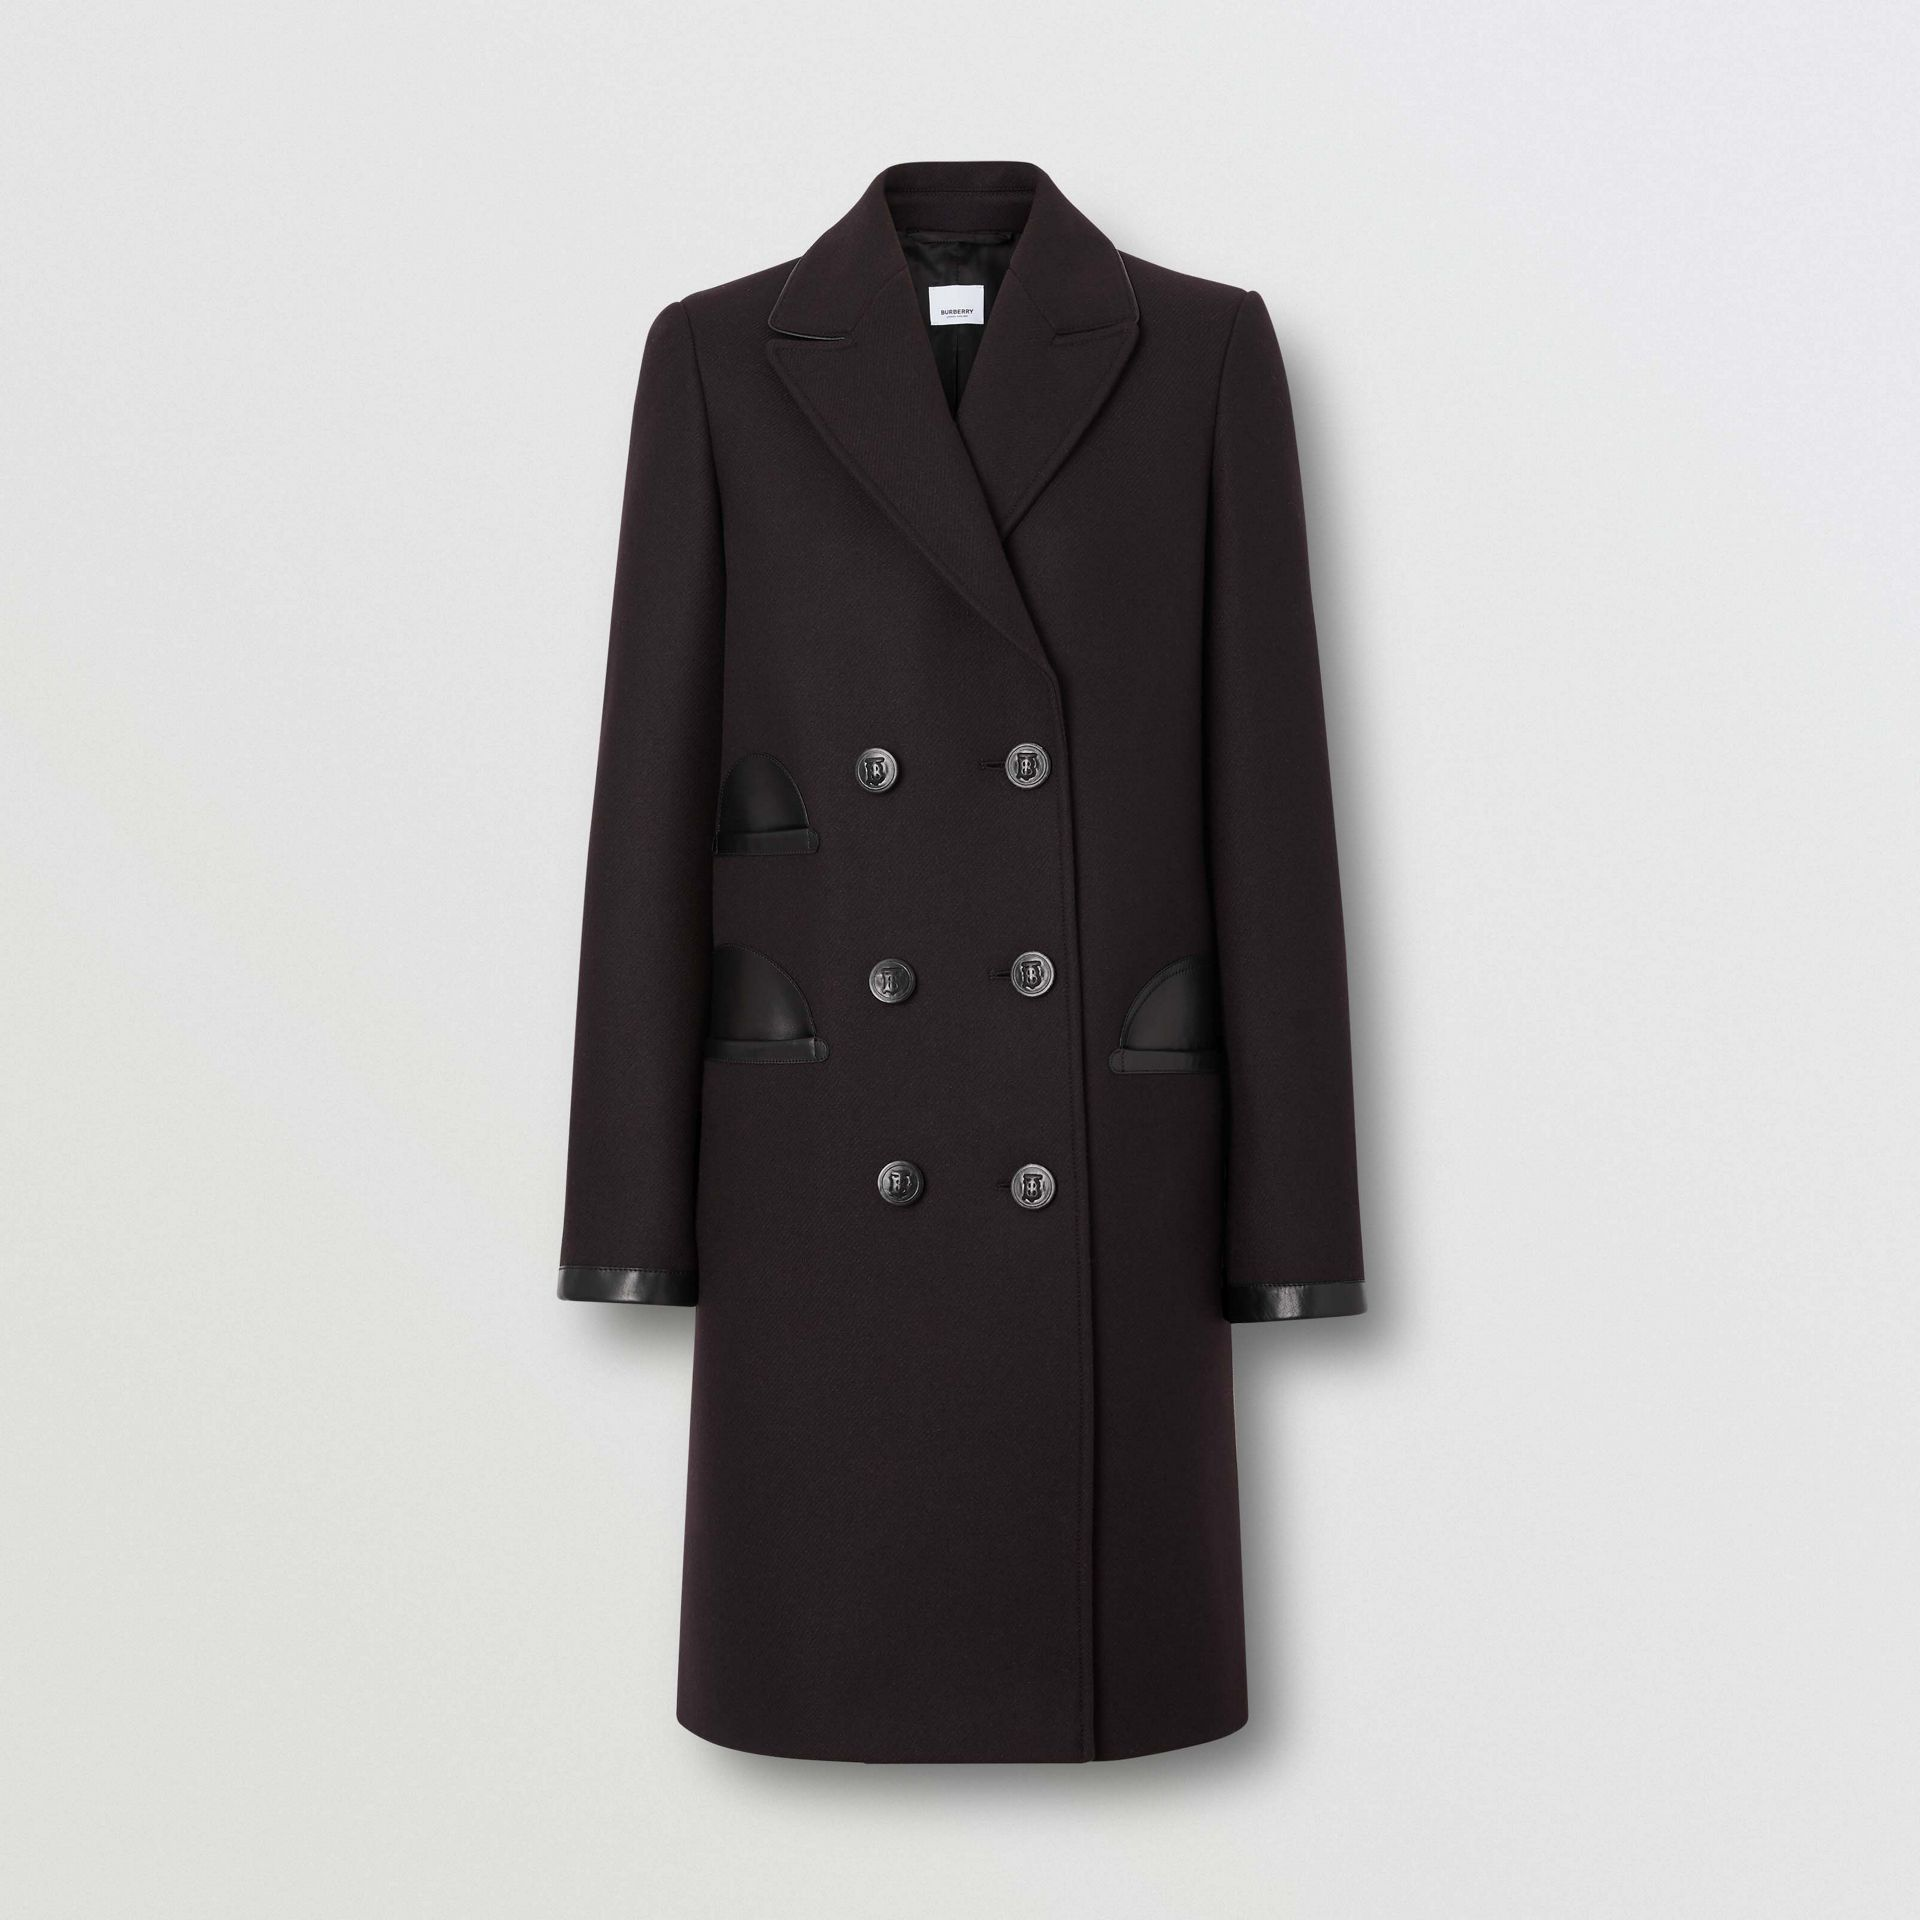 Lambskin Trim Wool Cashmere Blend Tailored Coat in Black Maroon - Women | Burberry - gallery image 2